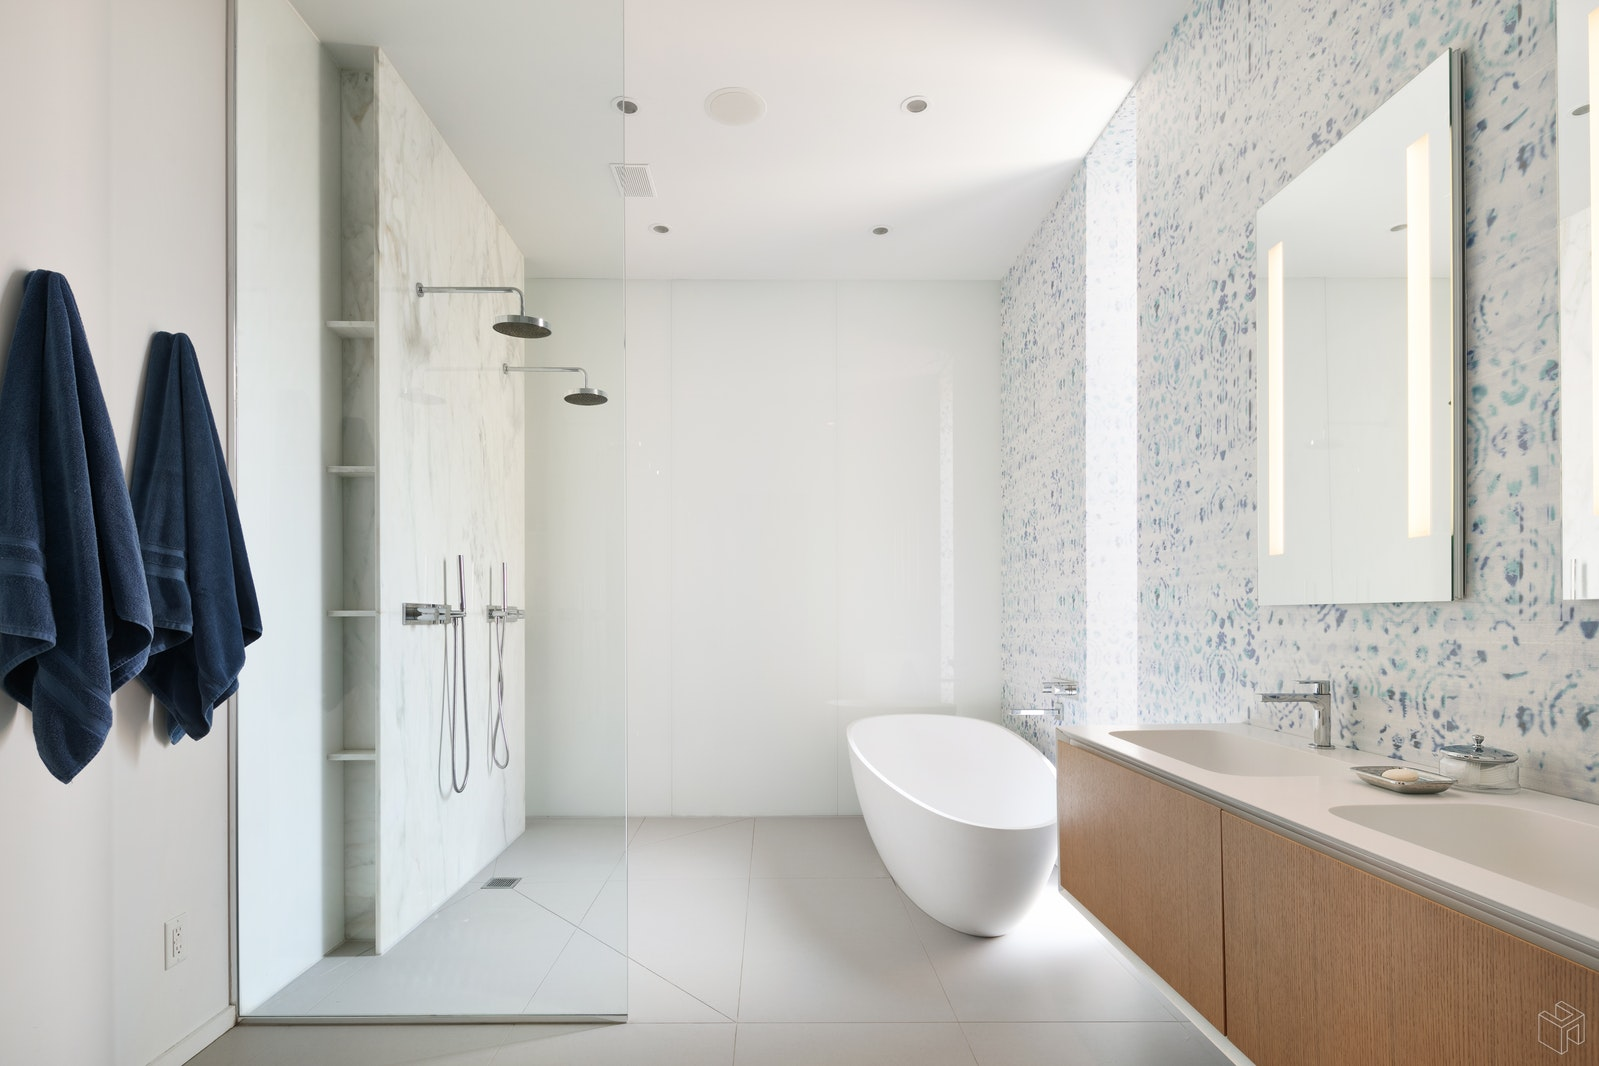 169 Water Street, Brooklyn, Brooklyn, NY, 11201, $4,995,000, Property For Sale, Halstead Real Estate, Photo 9